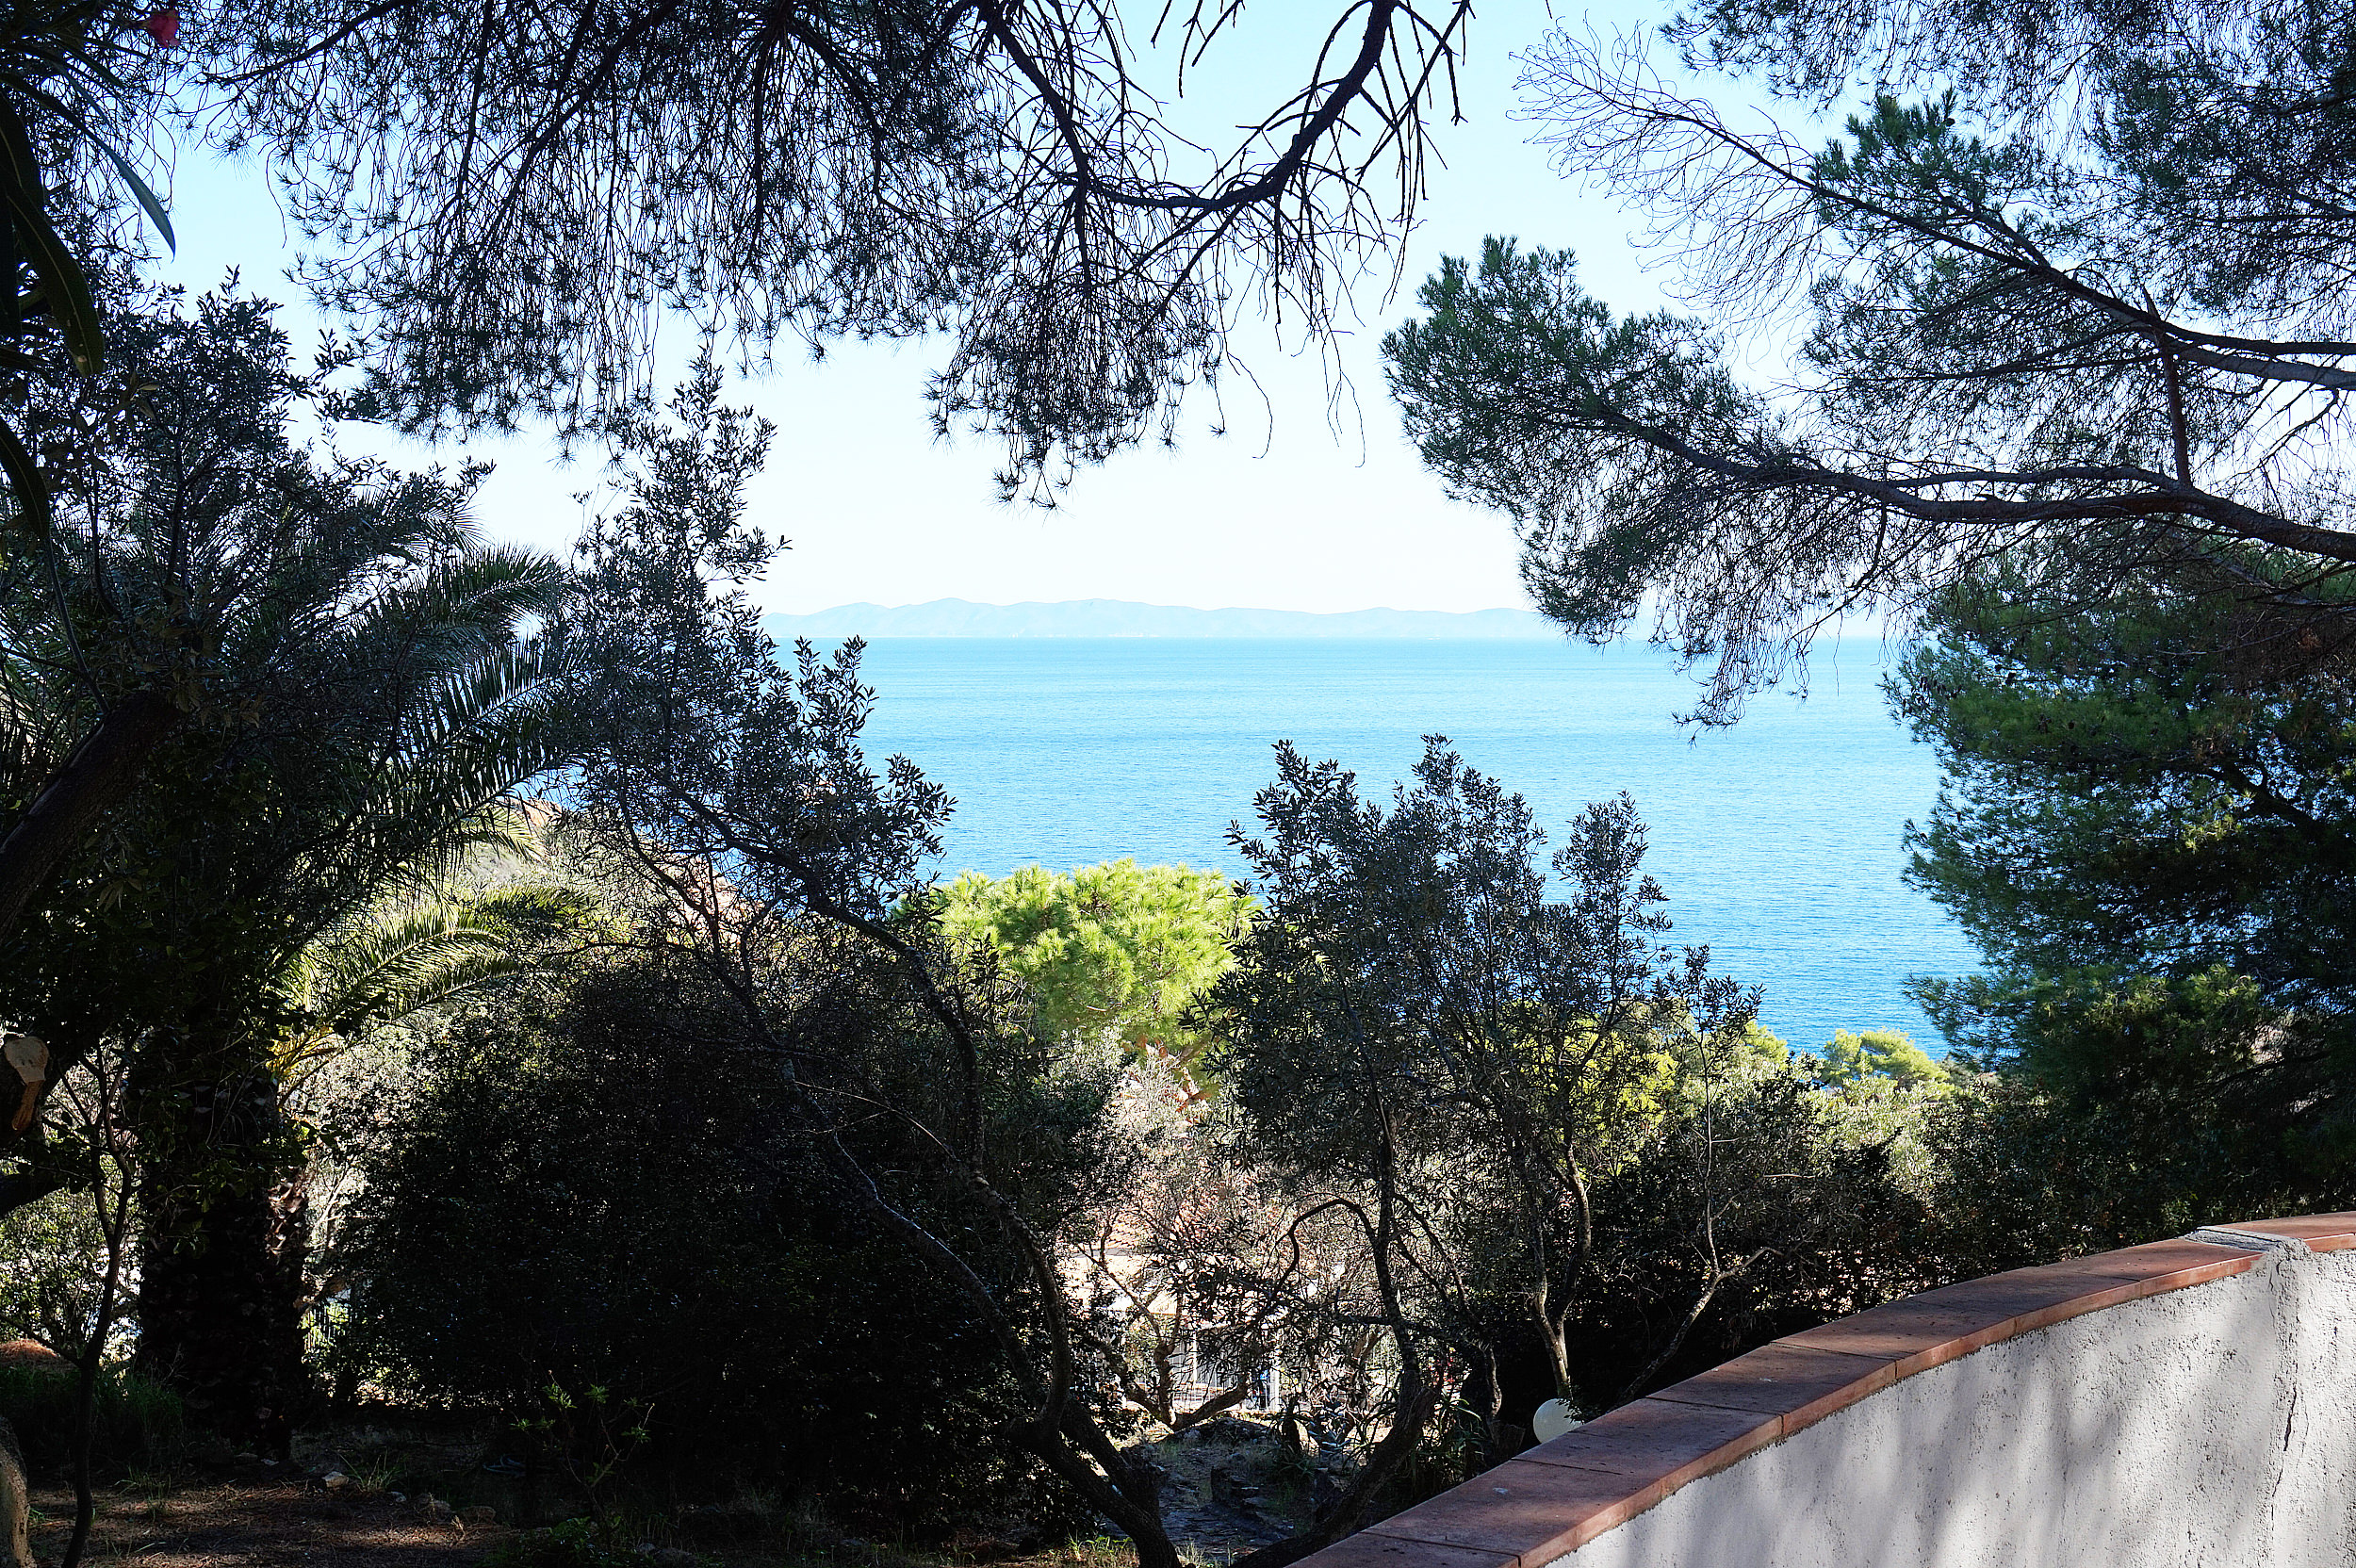 Copy of Giglio Villa garden view